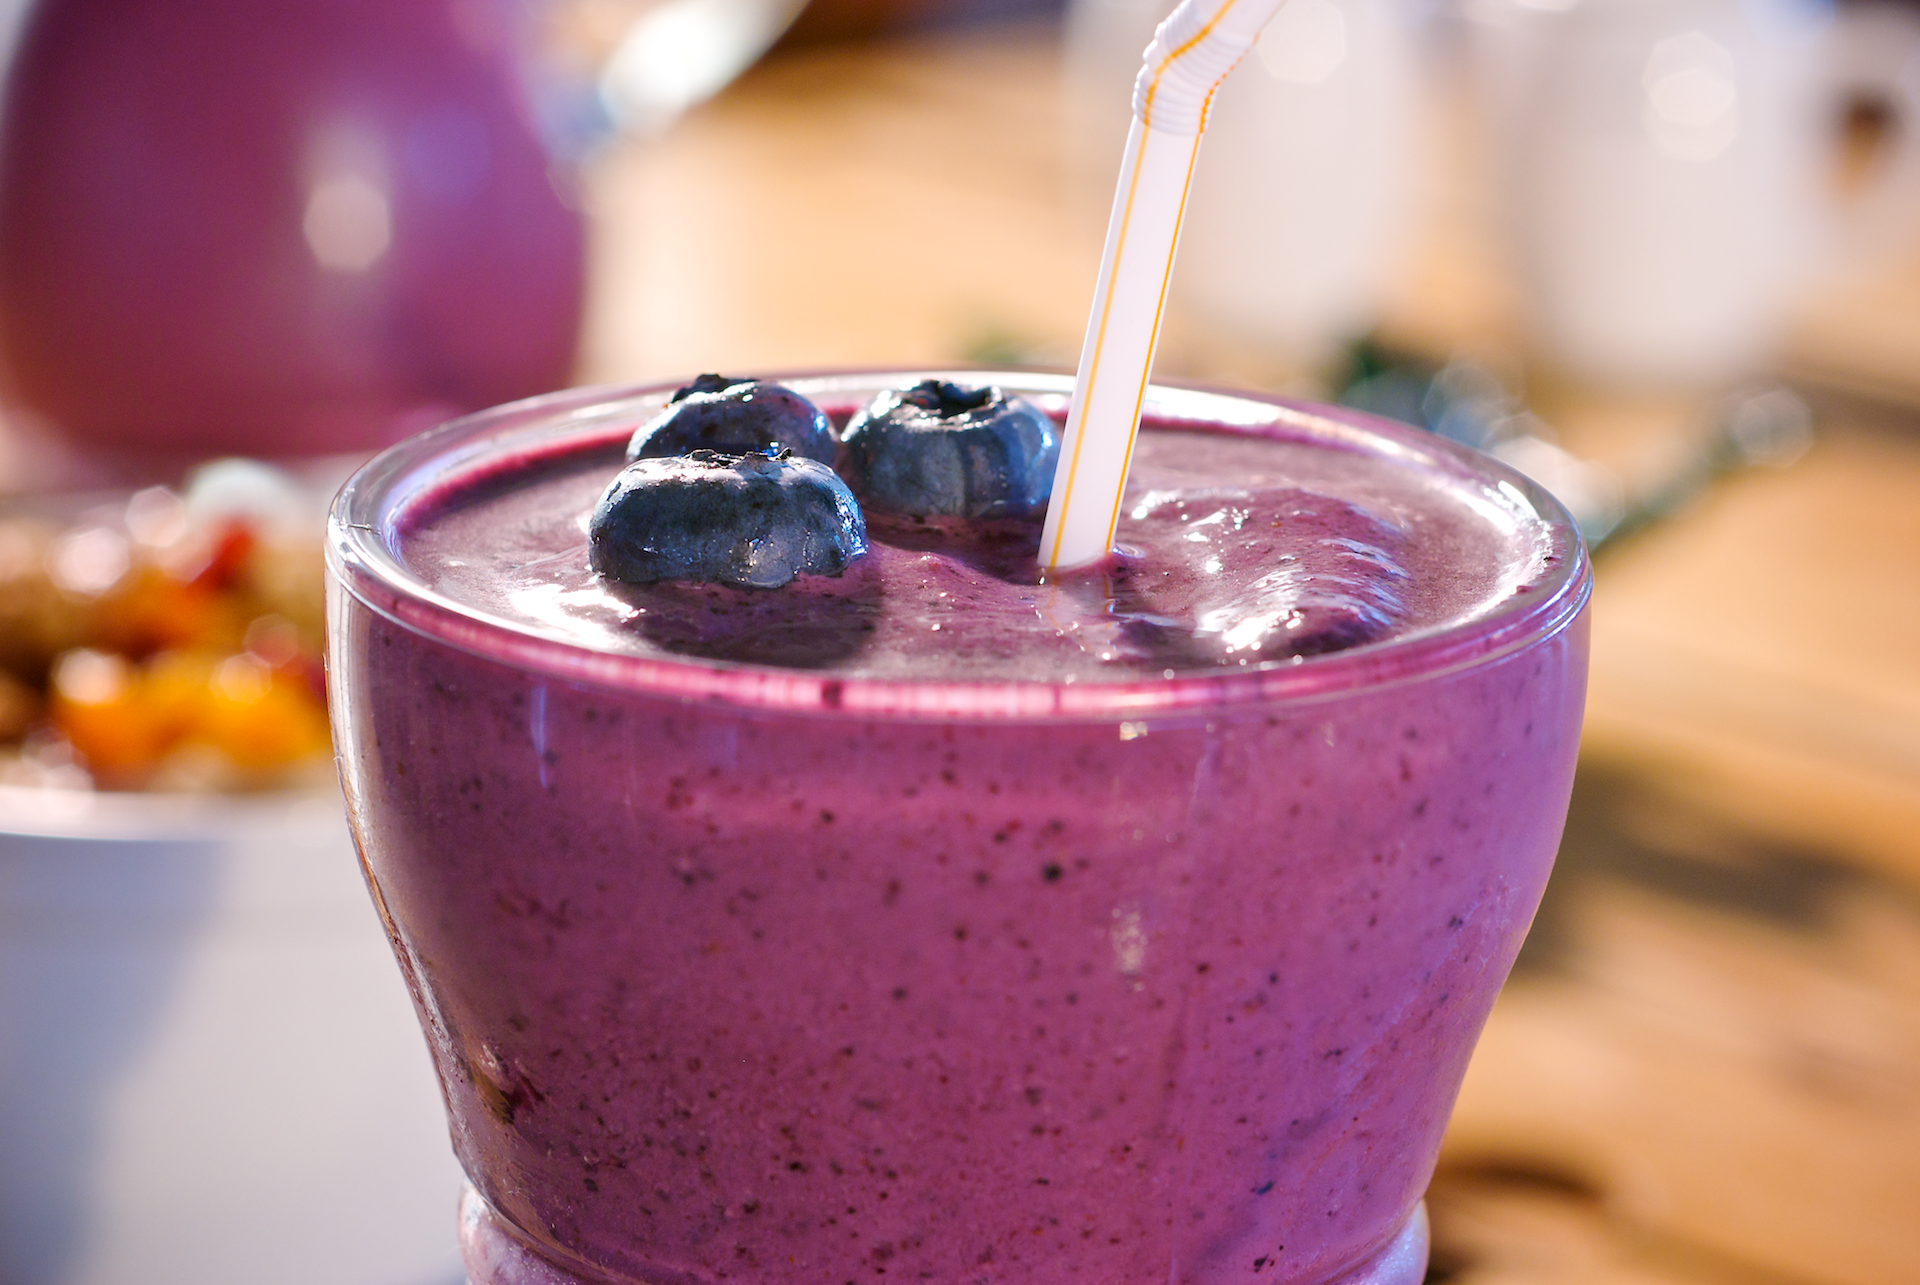 This yogurt breakfast smoothie is packed with some of the most powerful Superfoods on earth. It's rich in disease-fighting antioxidants which help prevent premature aging and promote cardiovascular and digestive health.